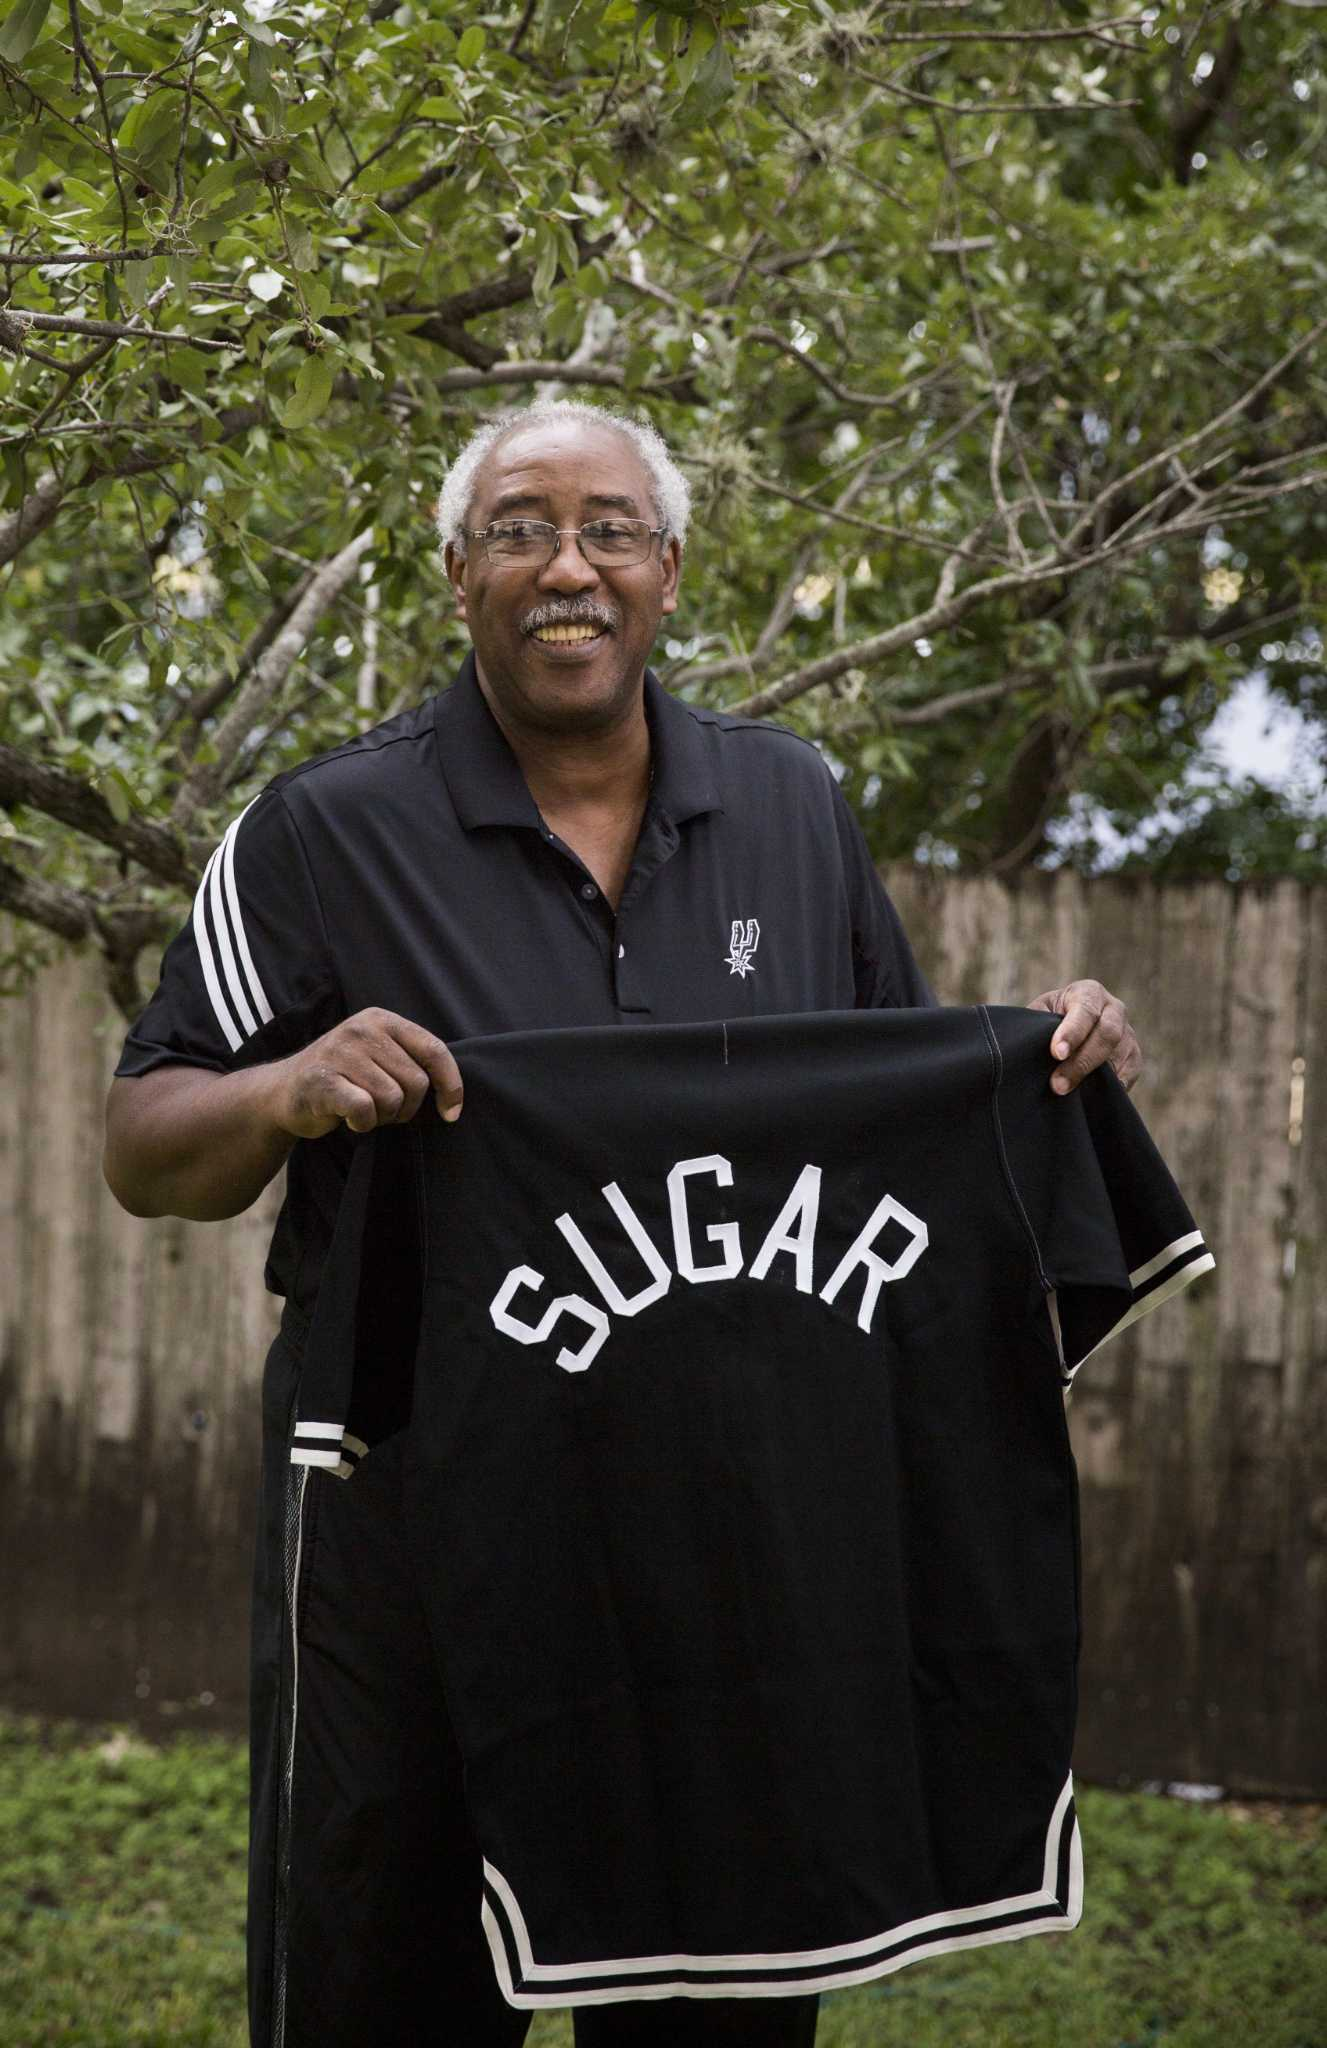 Former Spurs Teammates Recall Mike Gale S Defense Upbeat Personality Expressnews Com